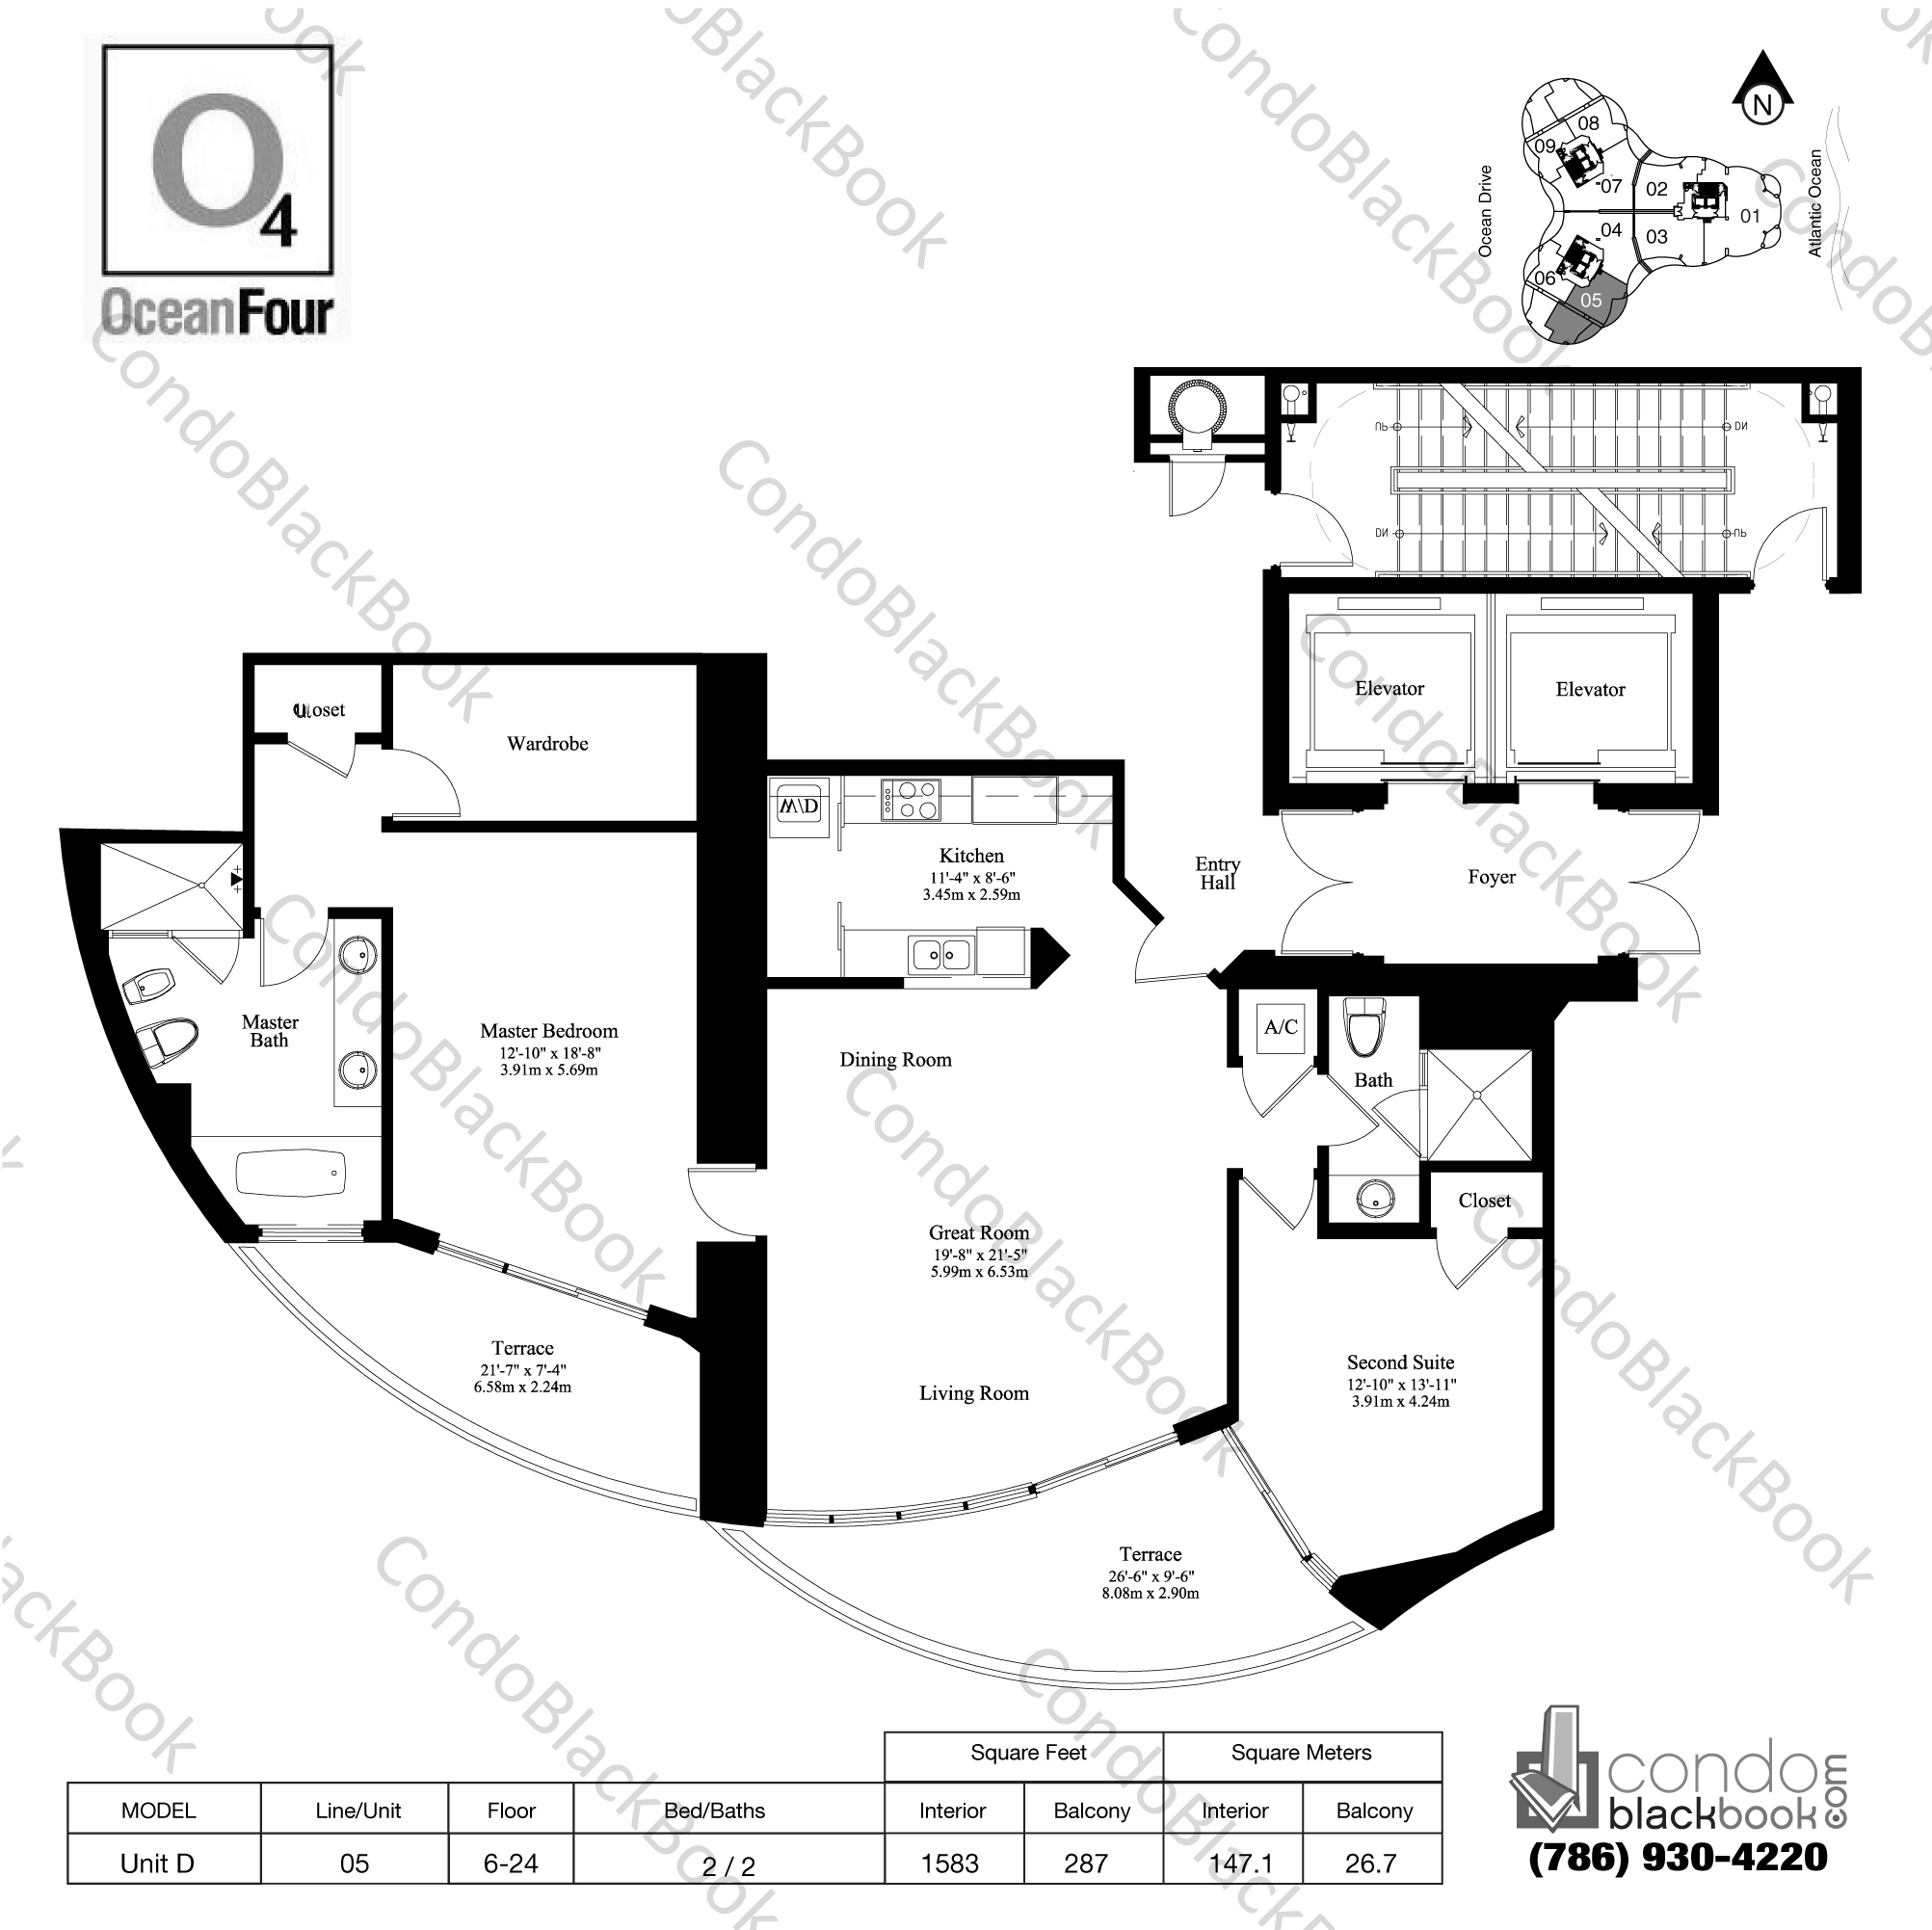 Floor plan for Ocean Four Sunny Isles Beach, model Unit D, line 05, 2 / 2 bedrooms, 1583 sq ft